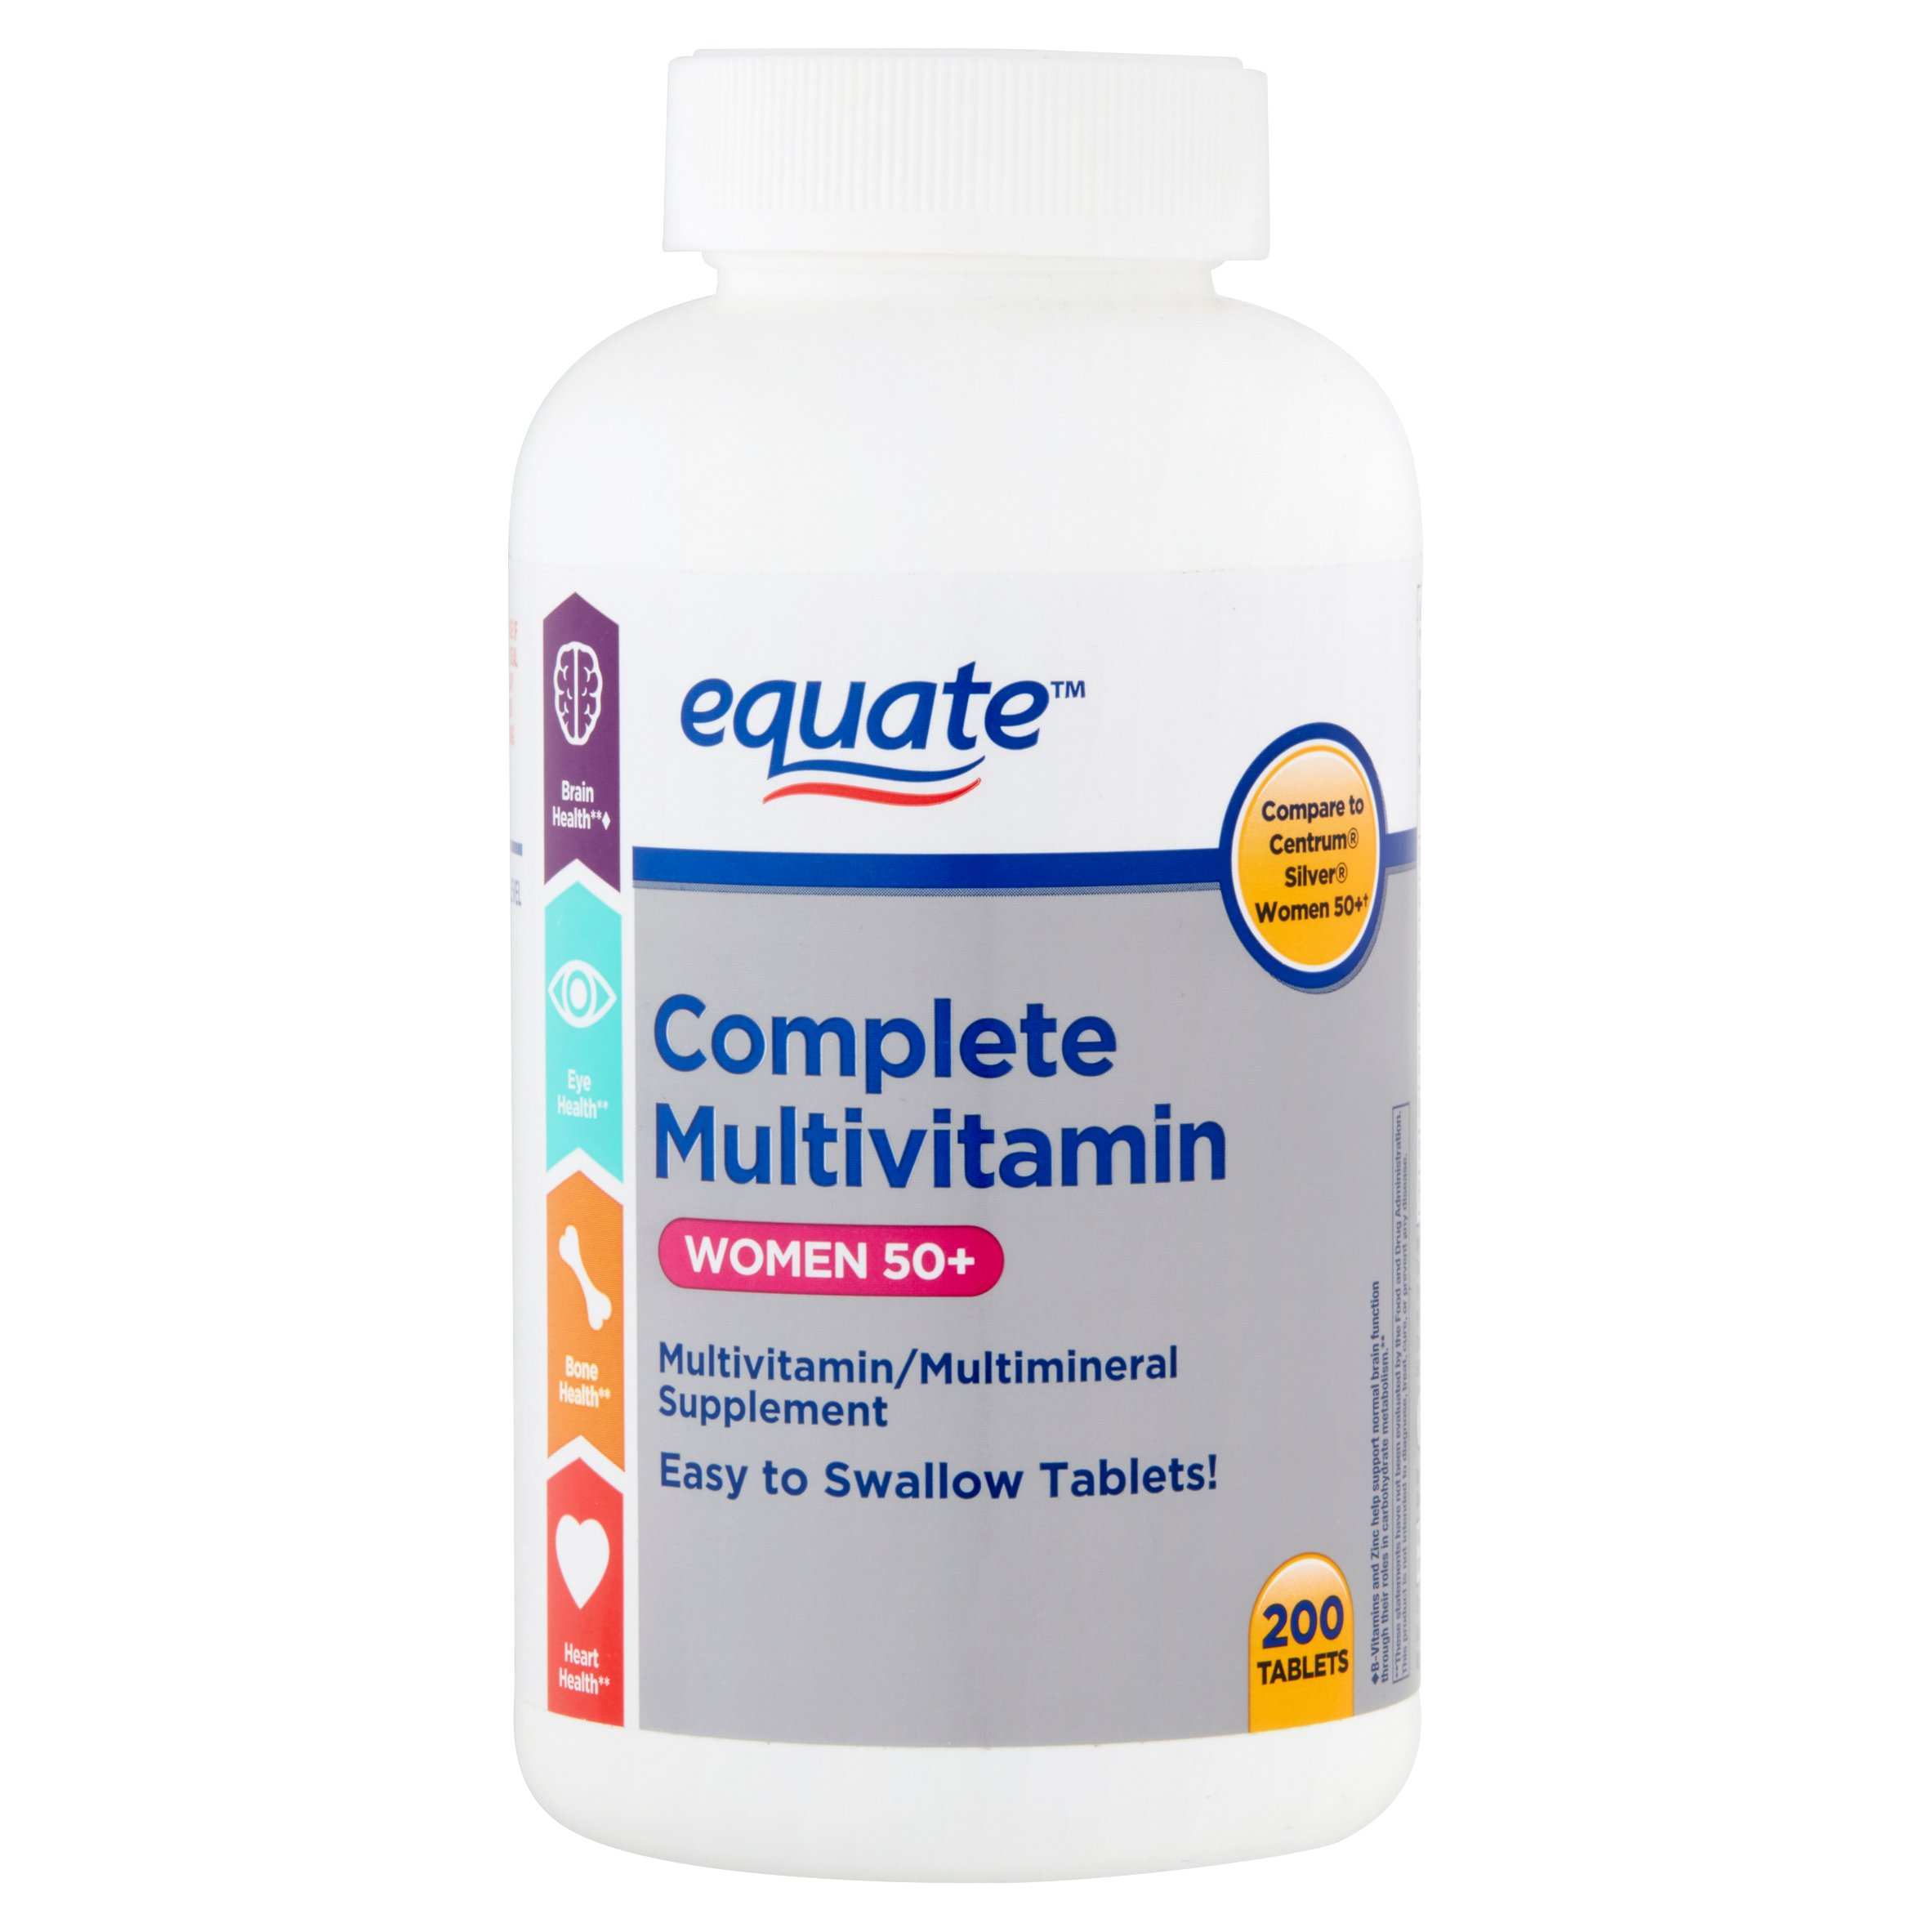 Equate complete multivitamin women 50+ multivitamin/multimineral supplement, 200 ct